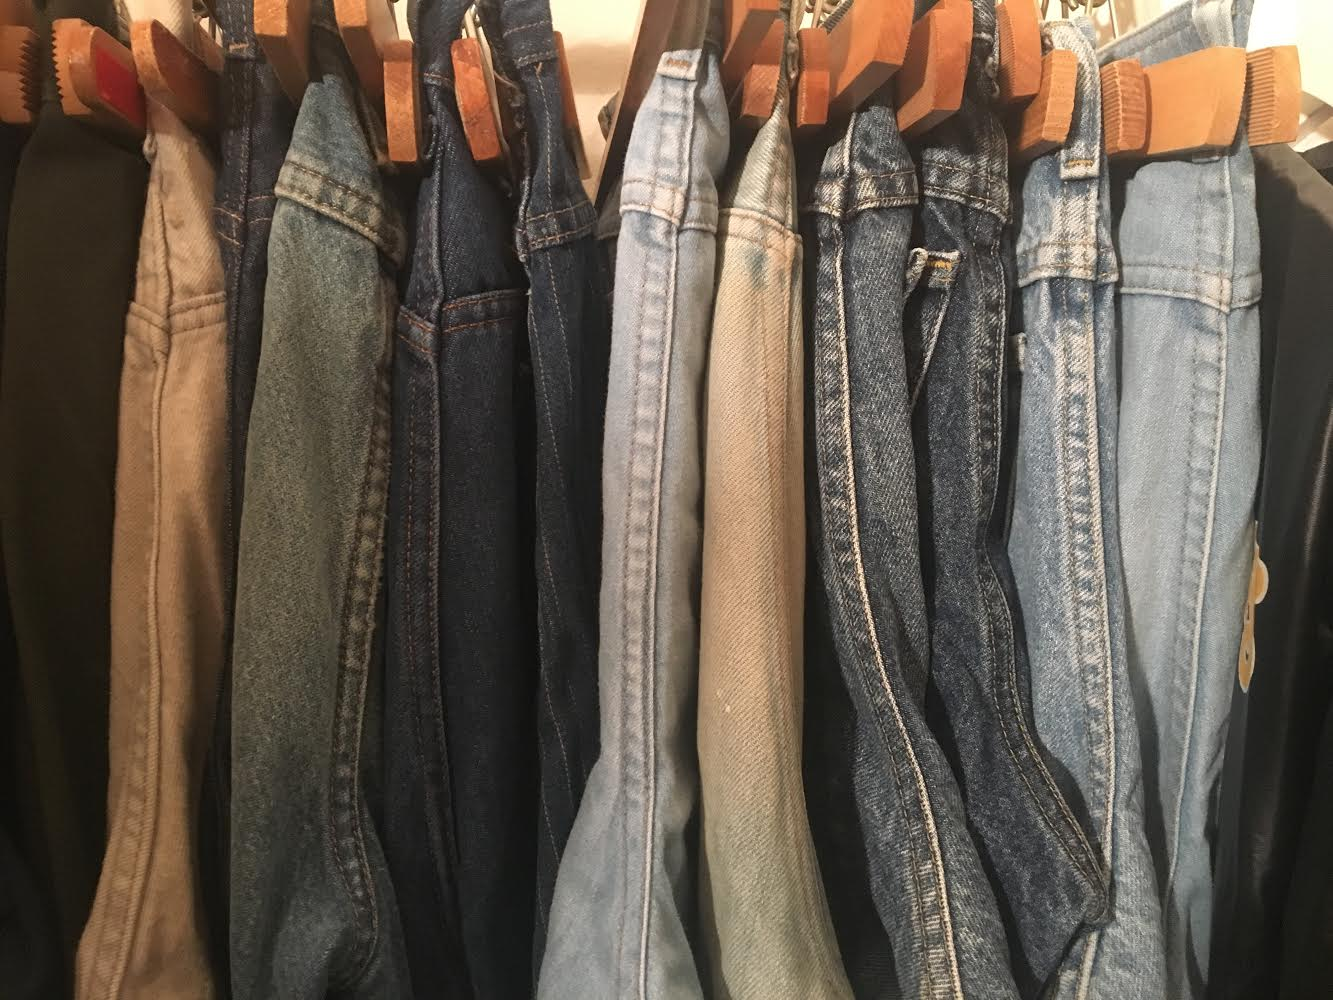 hanging denim.jpg